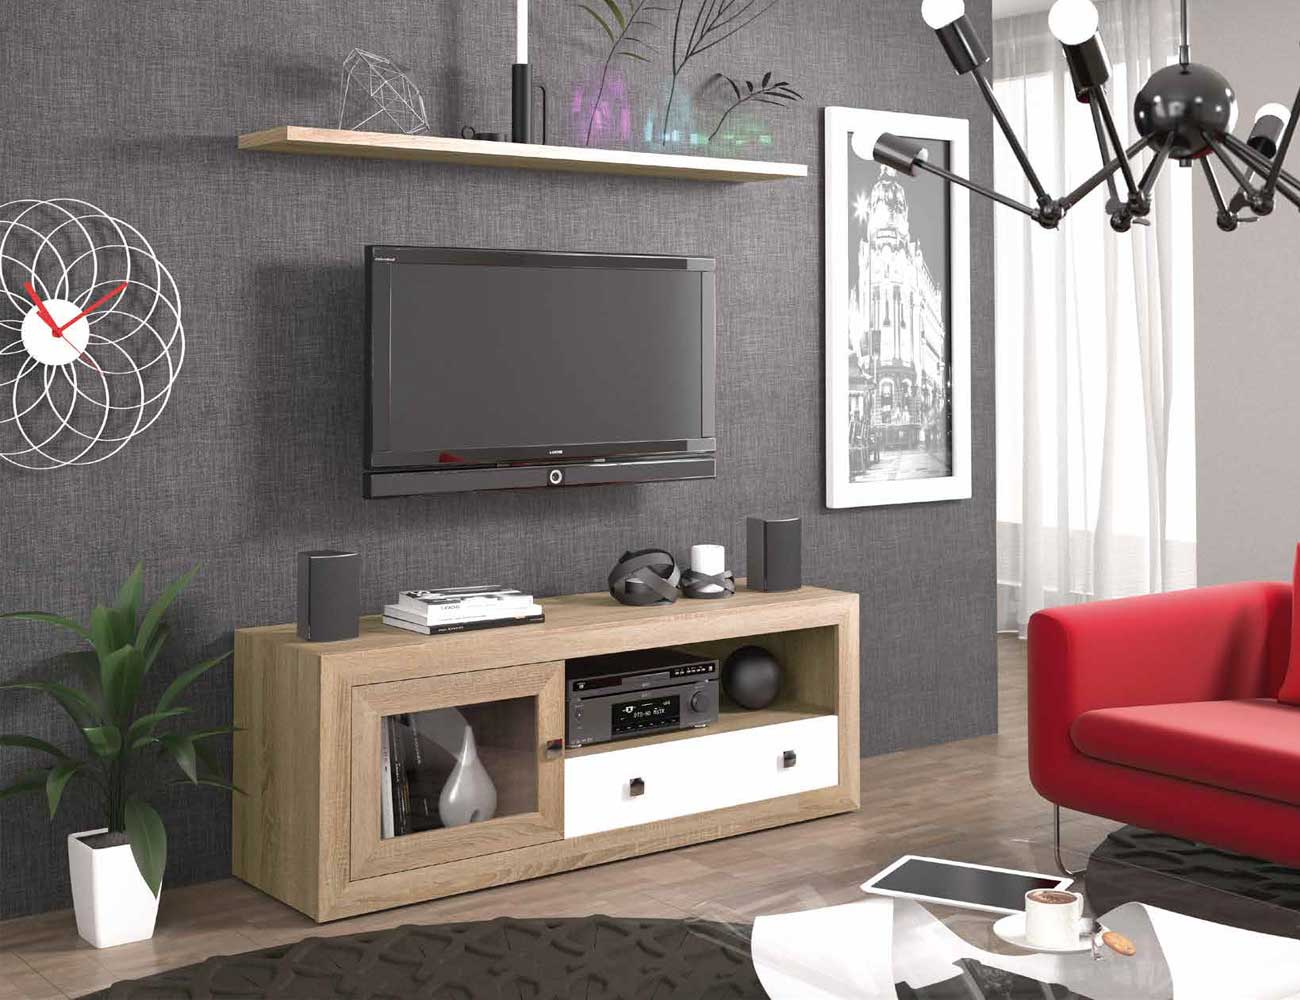 Mueble salon colonial cambrian blanco 20